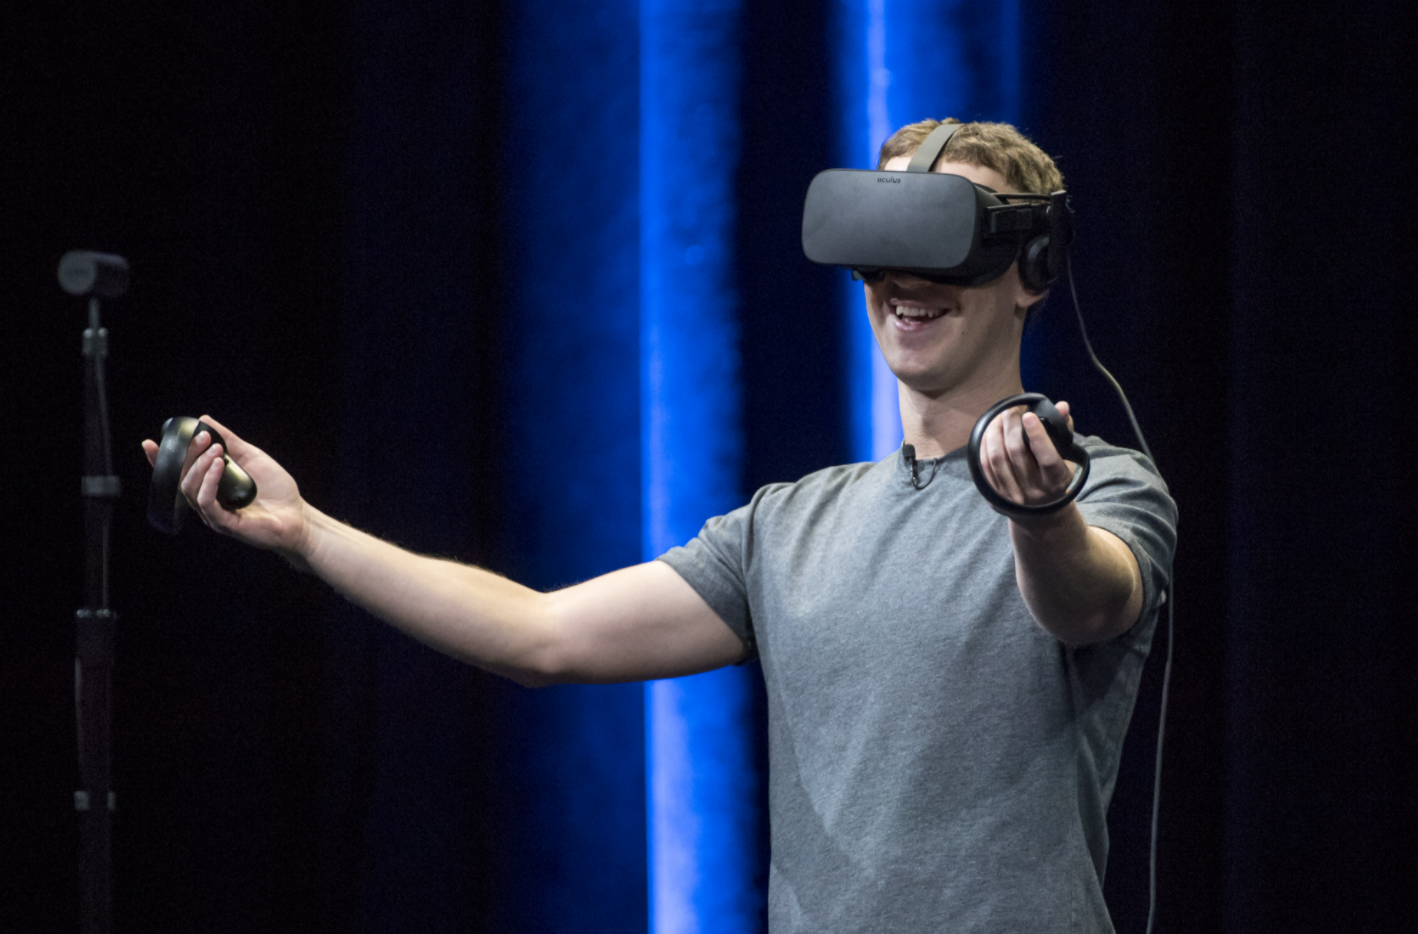 Oculus VR Devices Will Soon Require Facebook Login for First Time Users